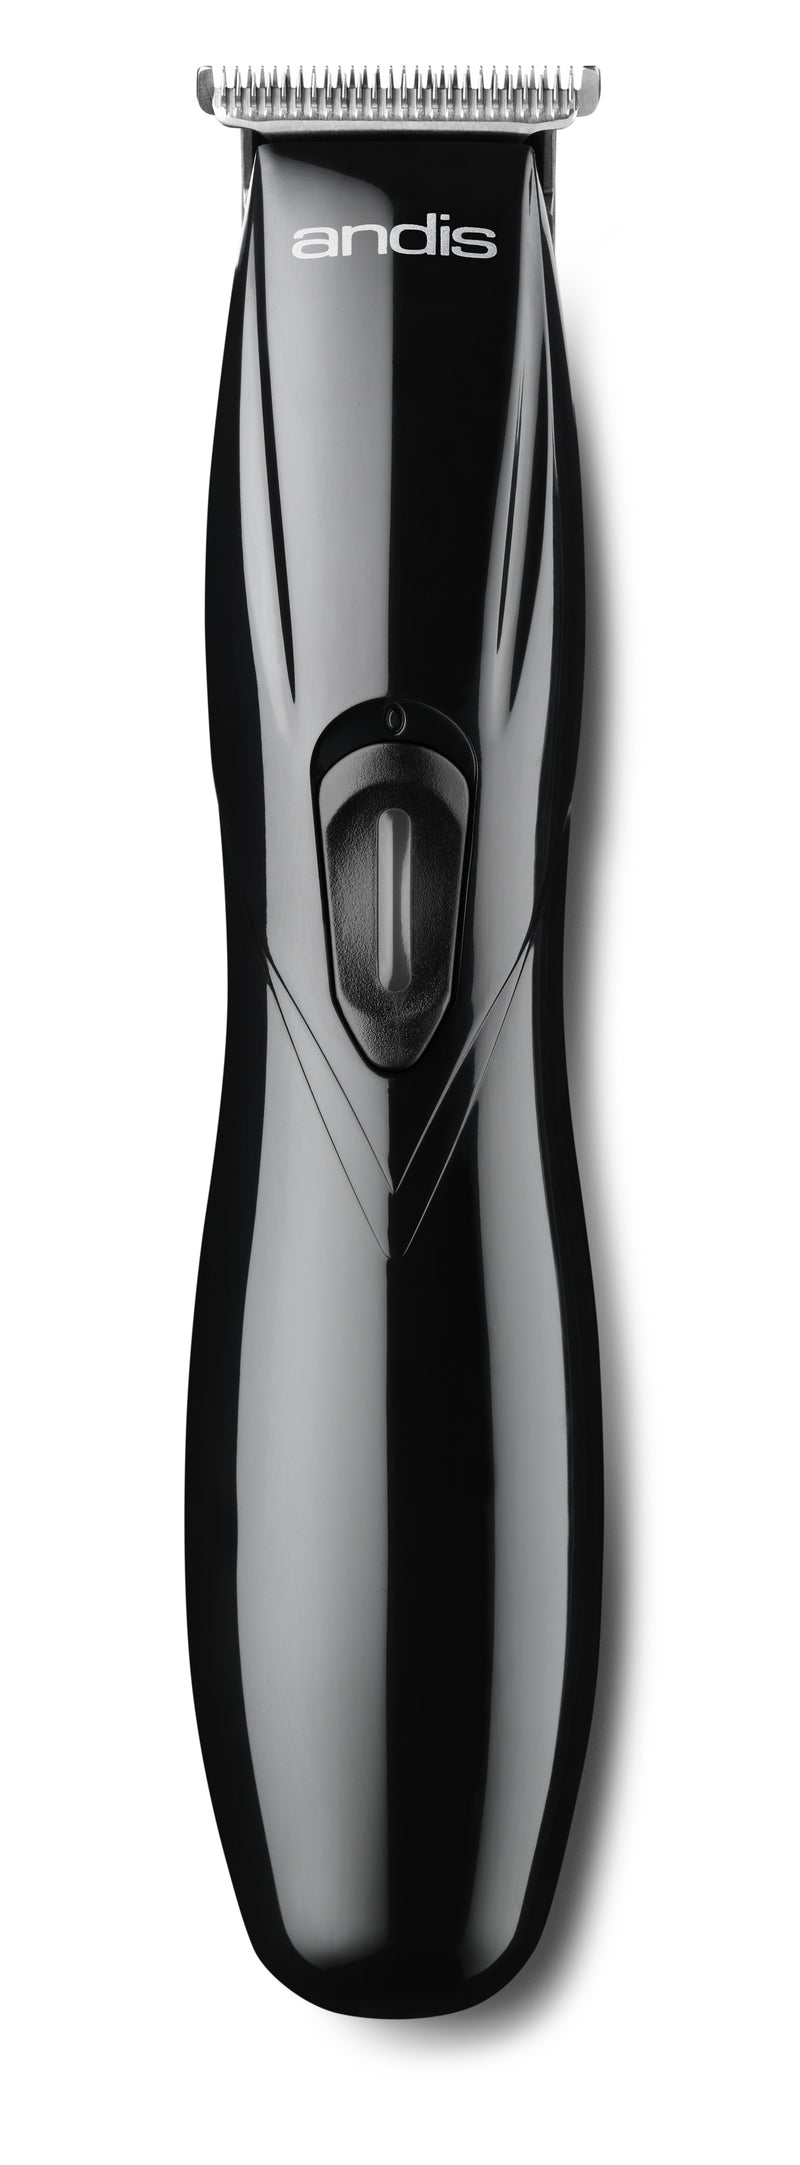 Andis Slimline Pro Li Cordless Professional Trimmer (D8)